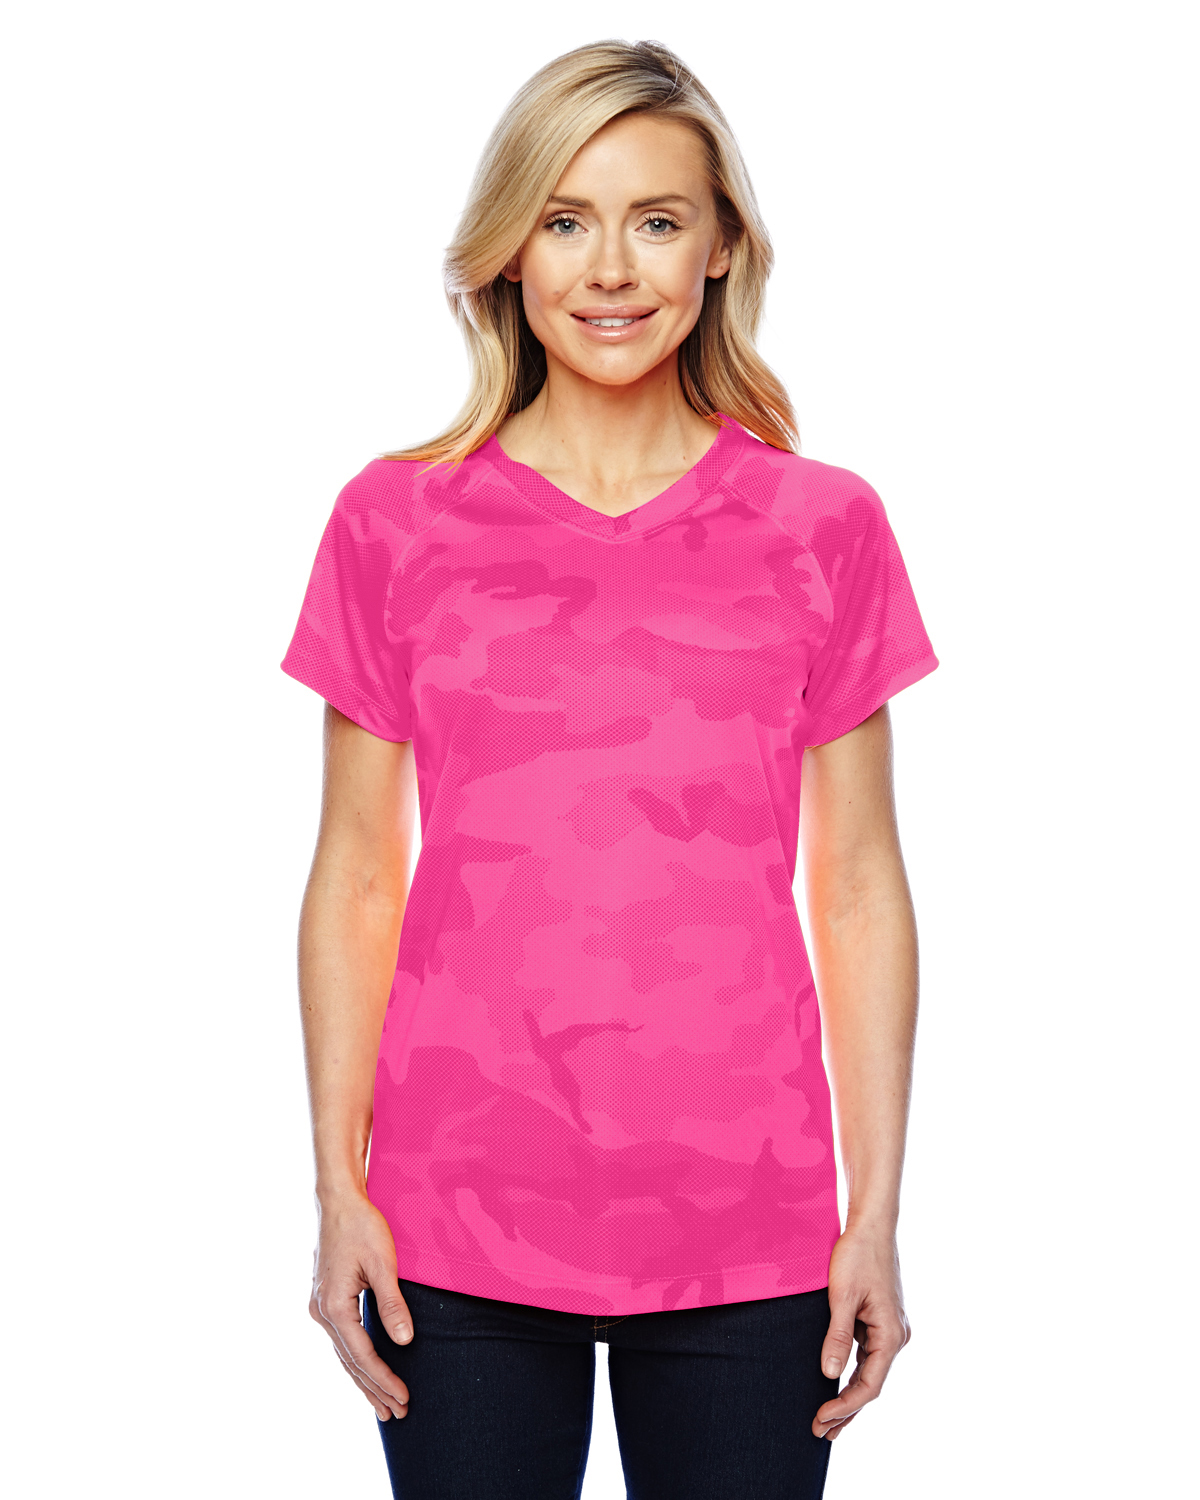 click to view WOW PINK CAMO